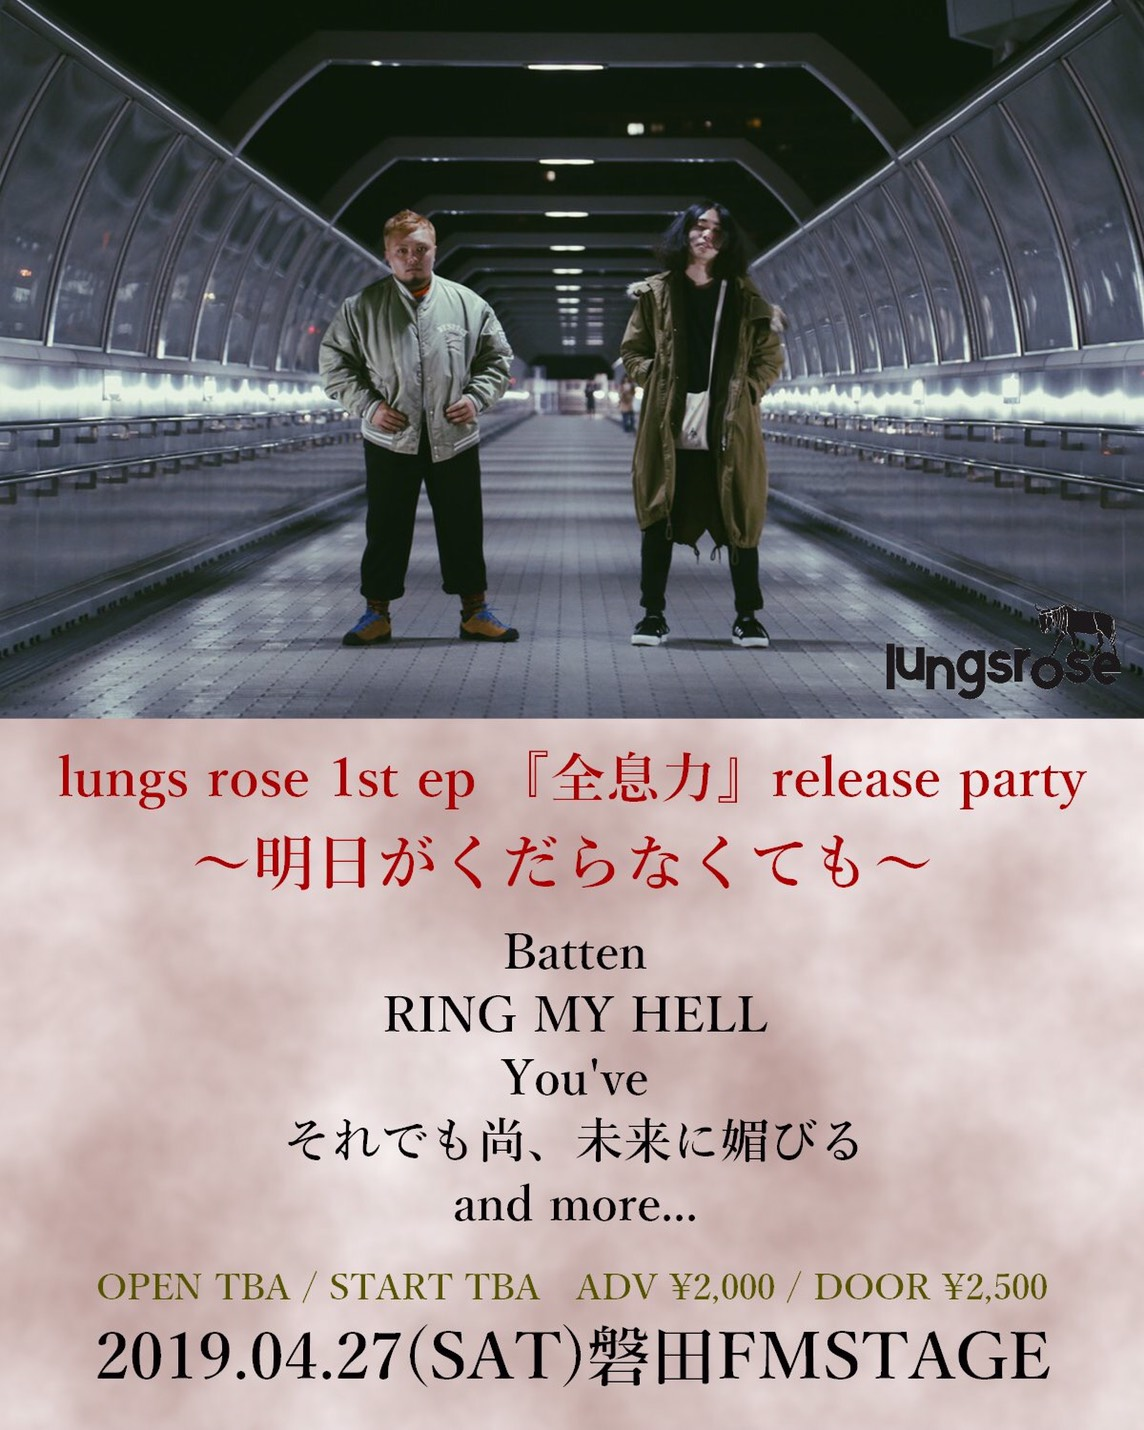 lungs rose pre. 1st.ep.【全息力】release party ~明日がくだらなくても~